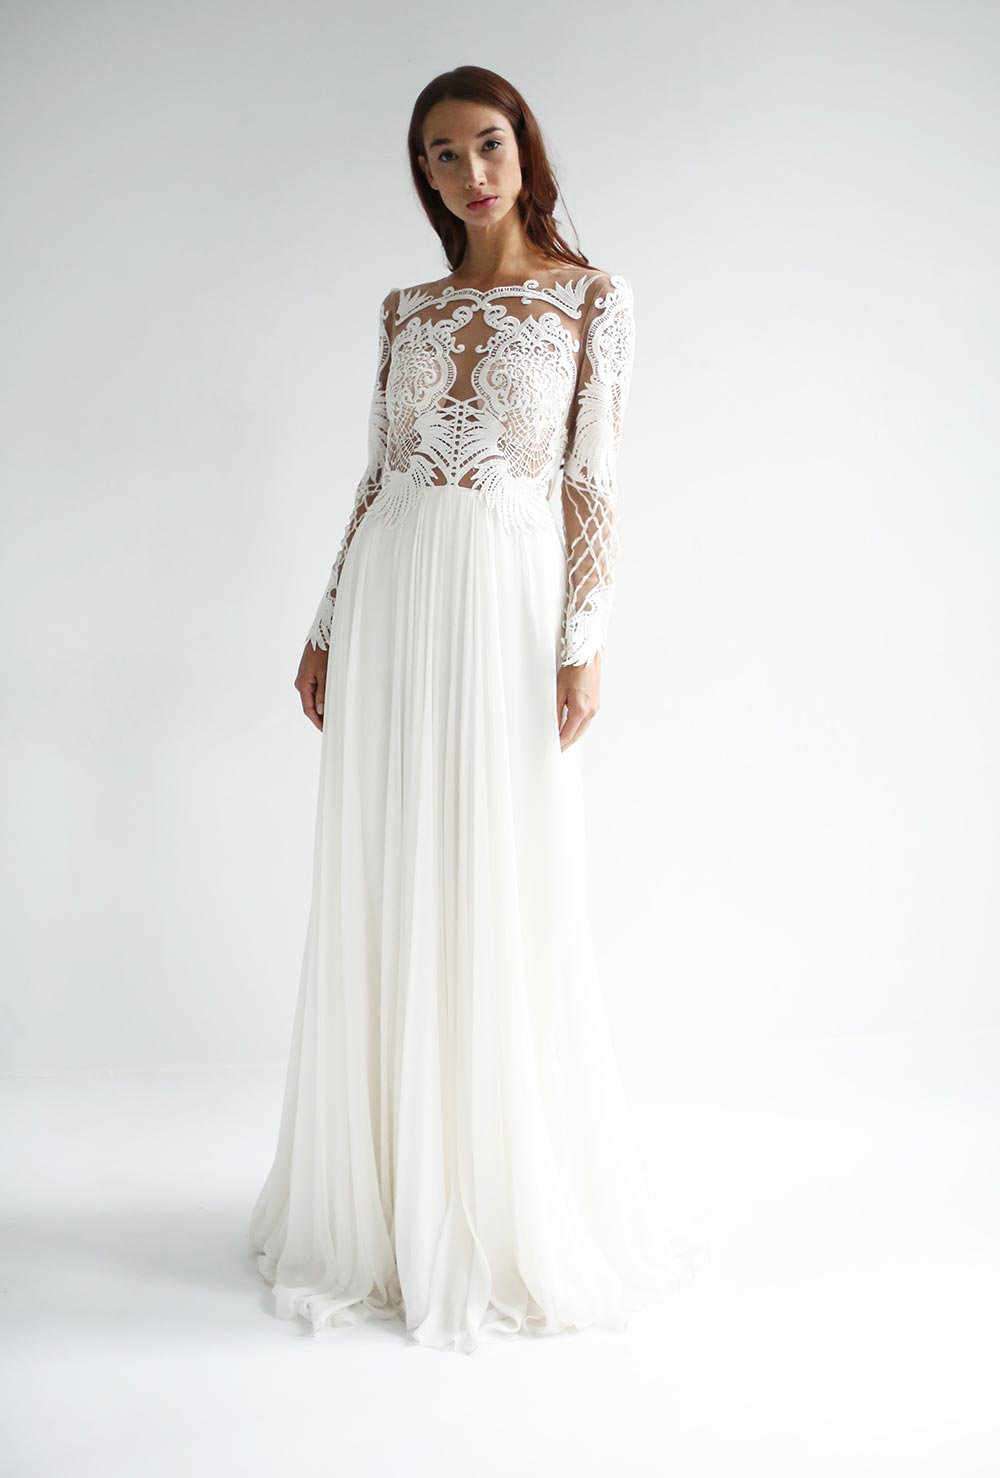 long sleeve wedding dress with sheer patterned bodice